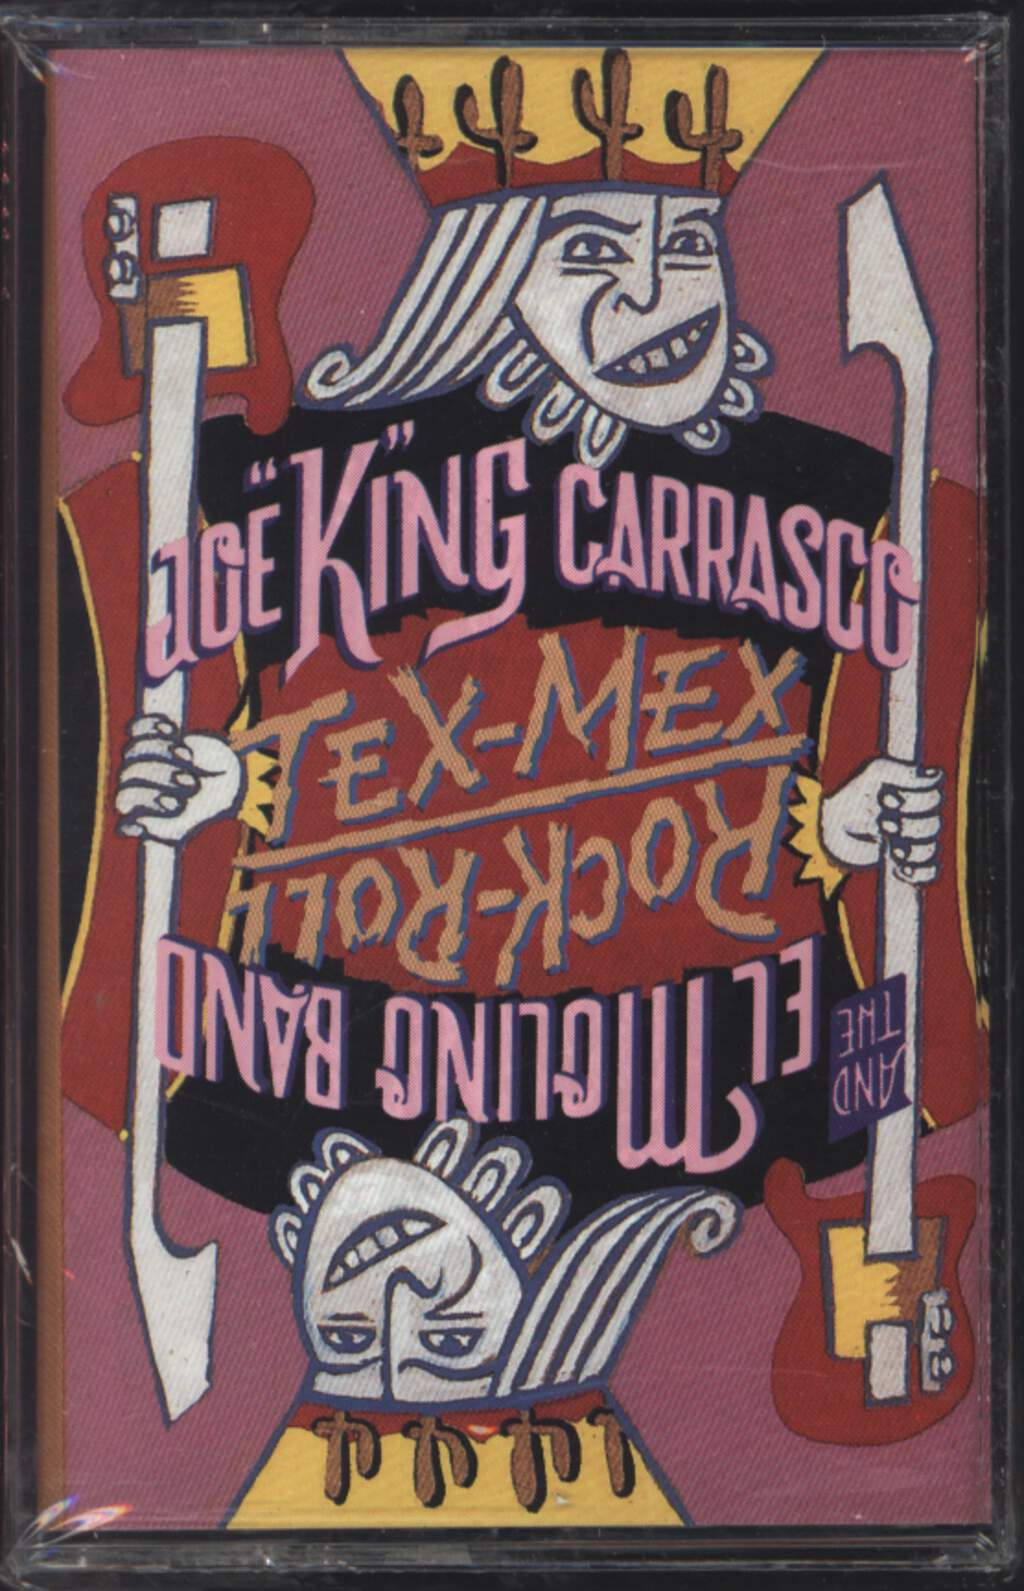 Joe King Carrasco And The El Molino Band: Tex-Mex Rock-Roll, Compact Cassette